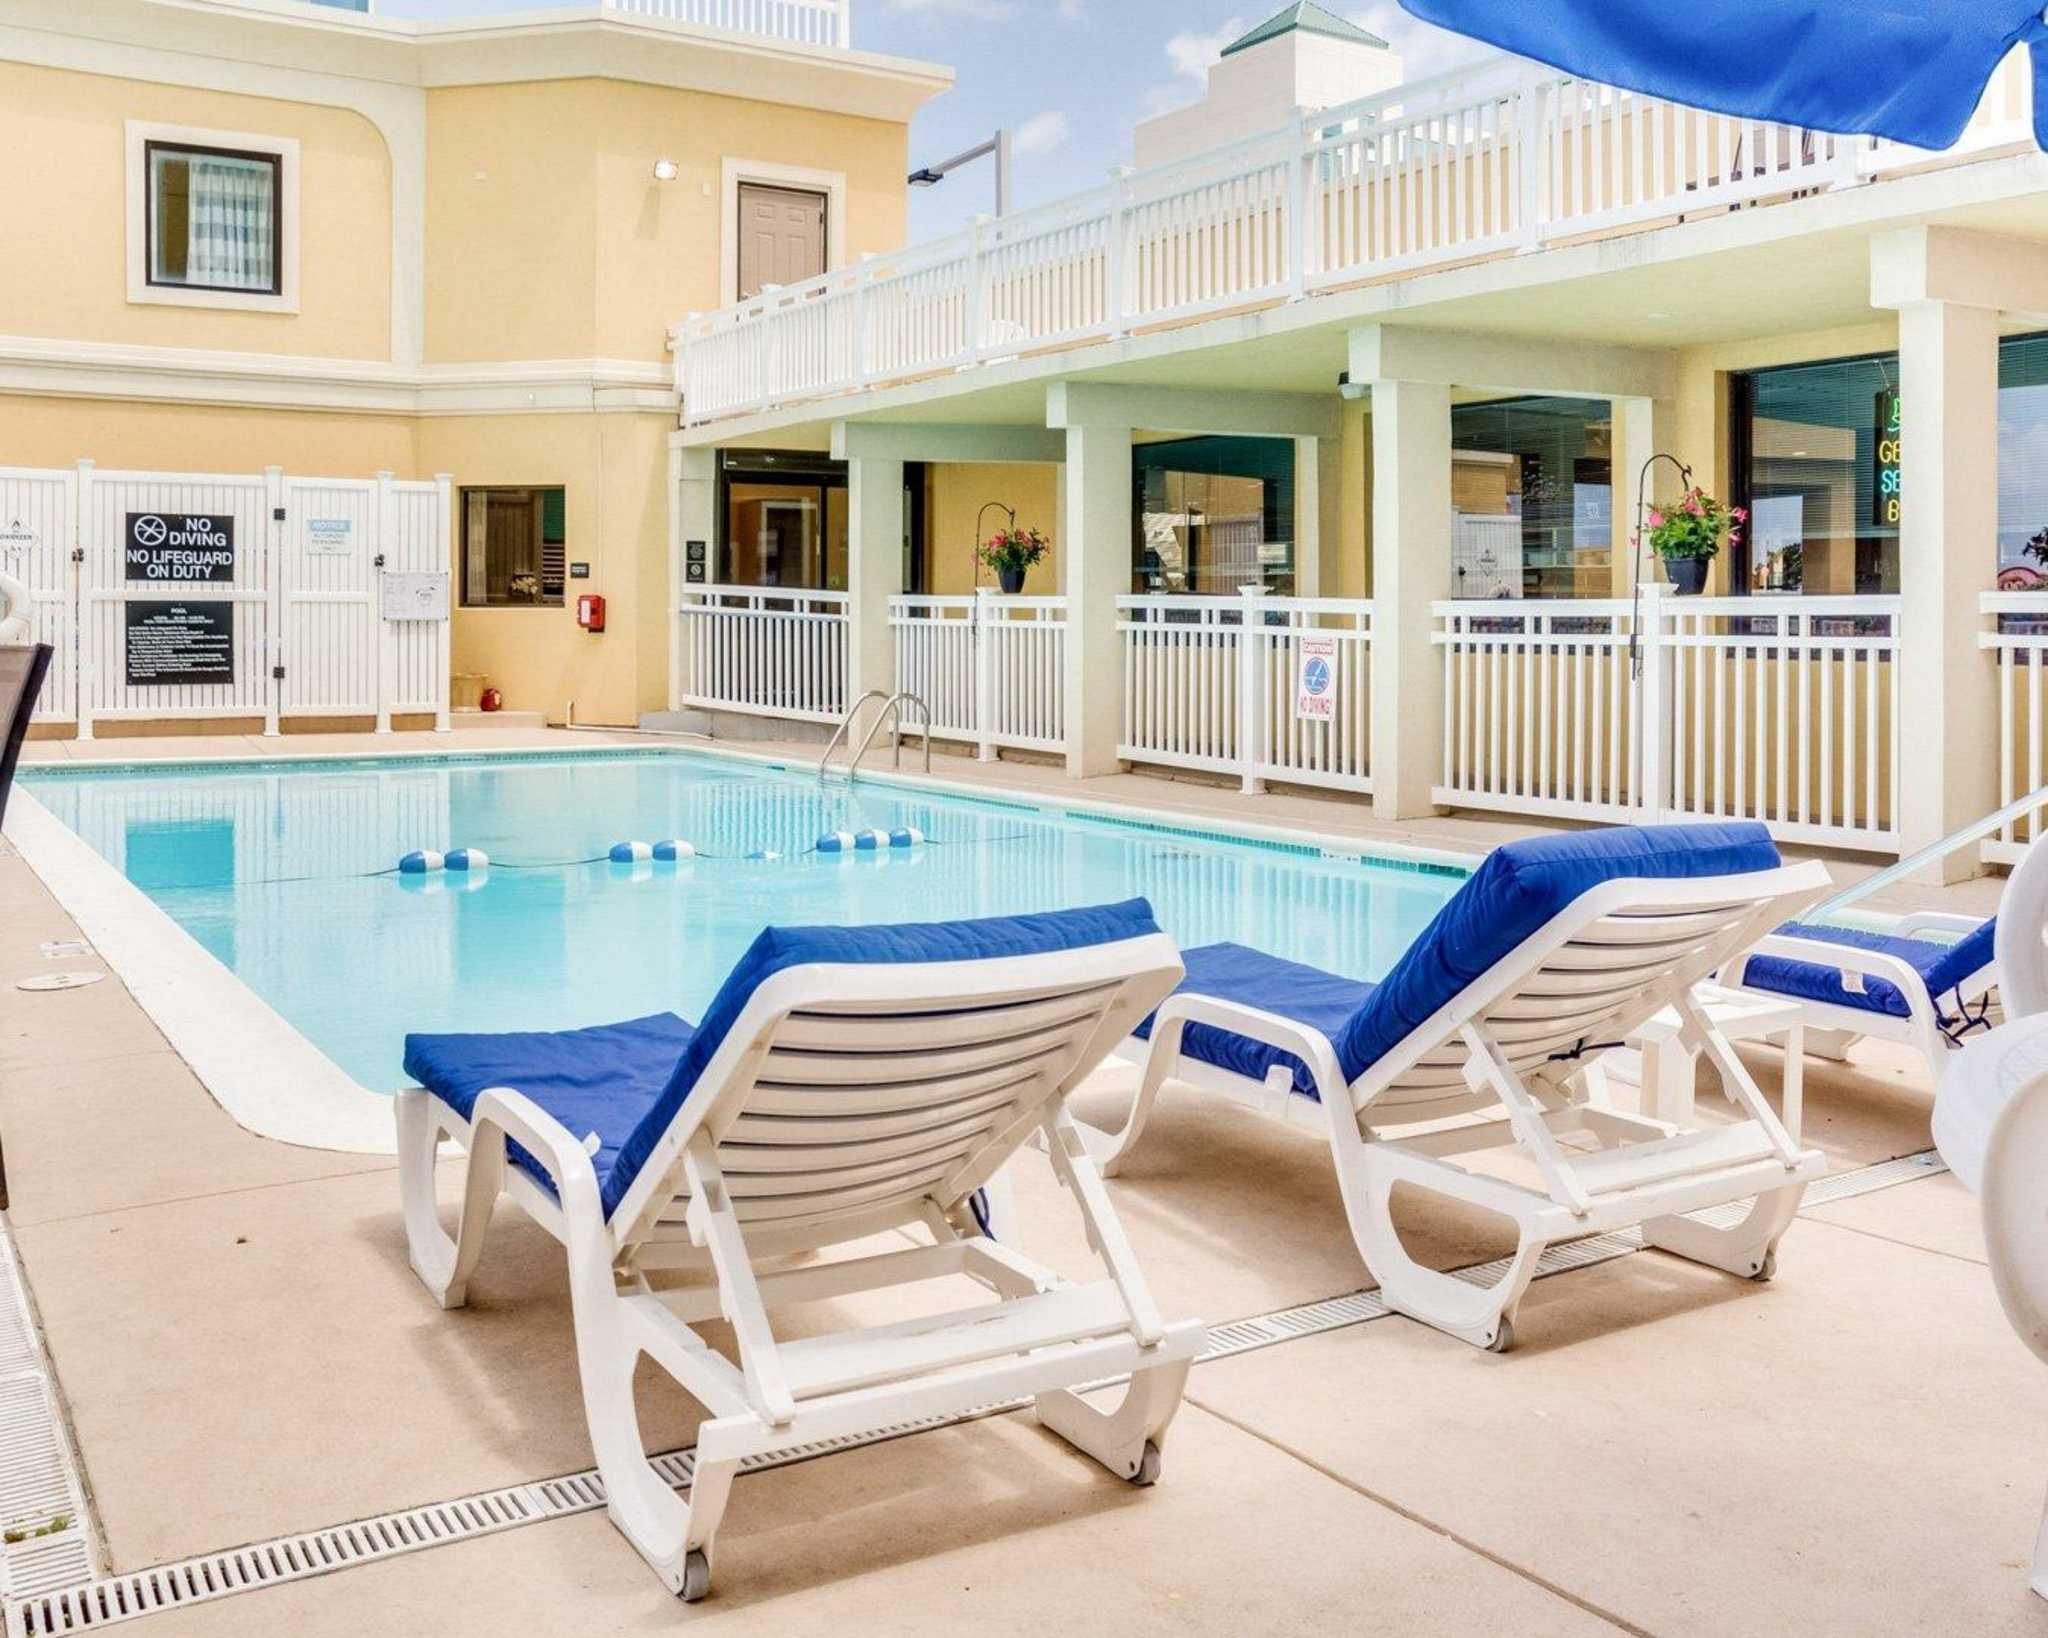 Clarion Inn And Suites Virginia Beach Reviews